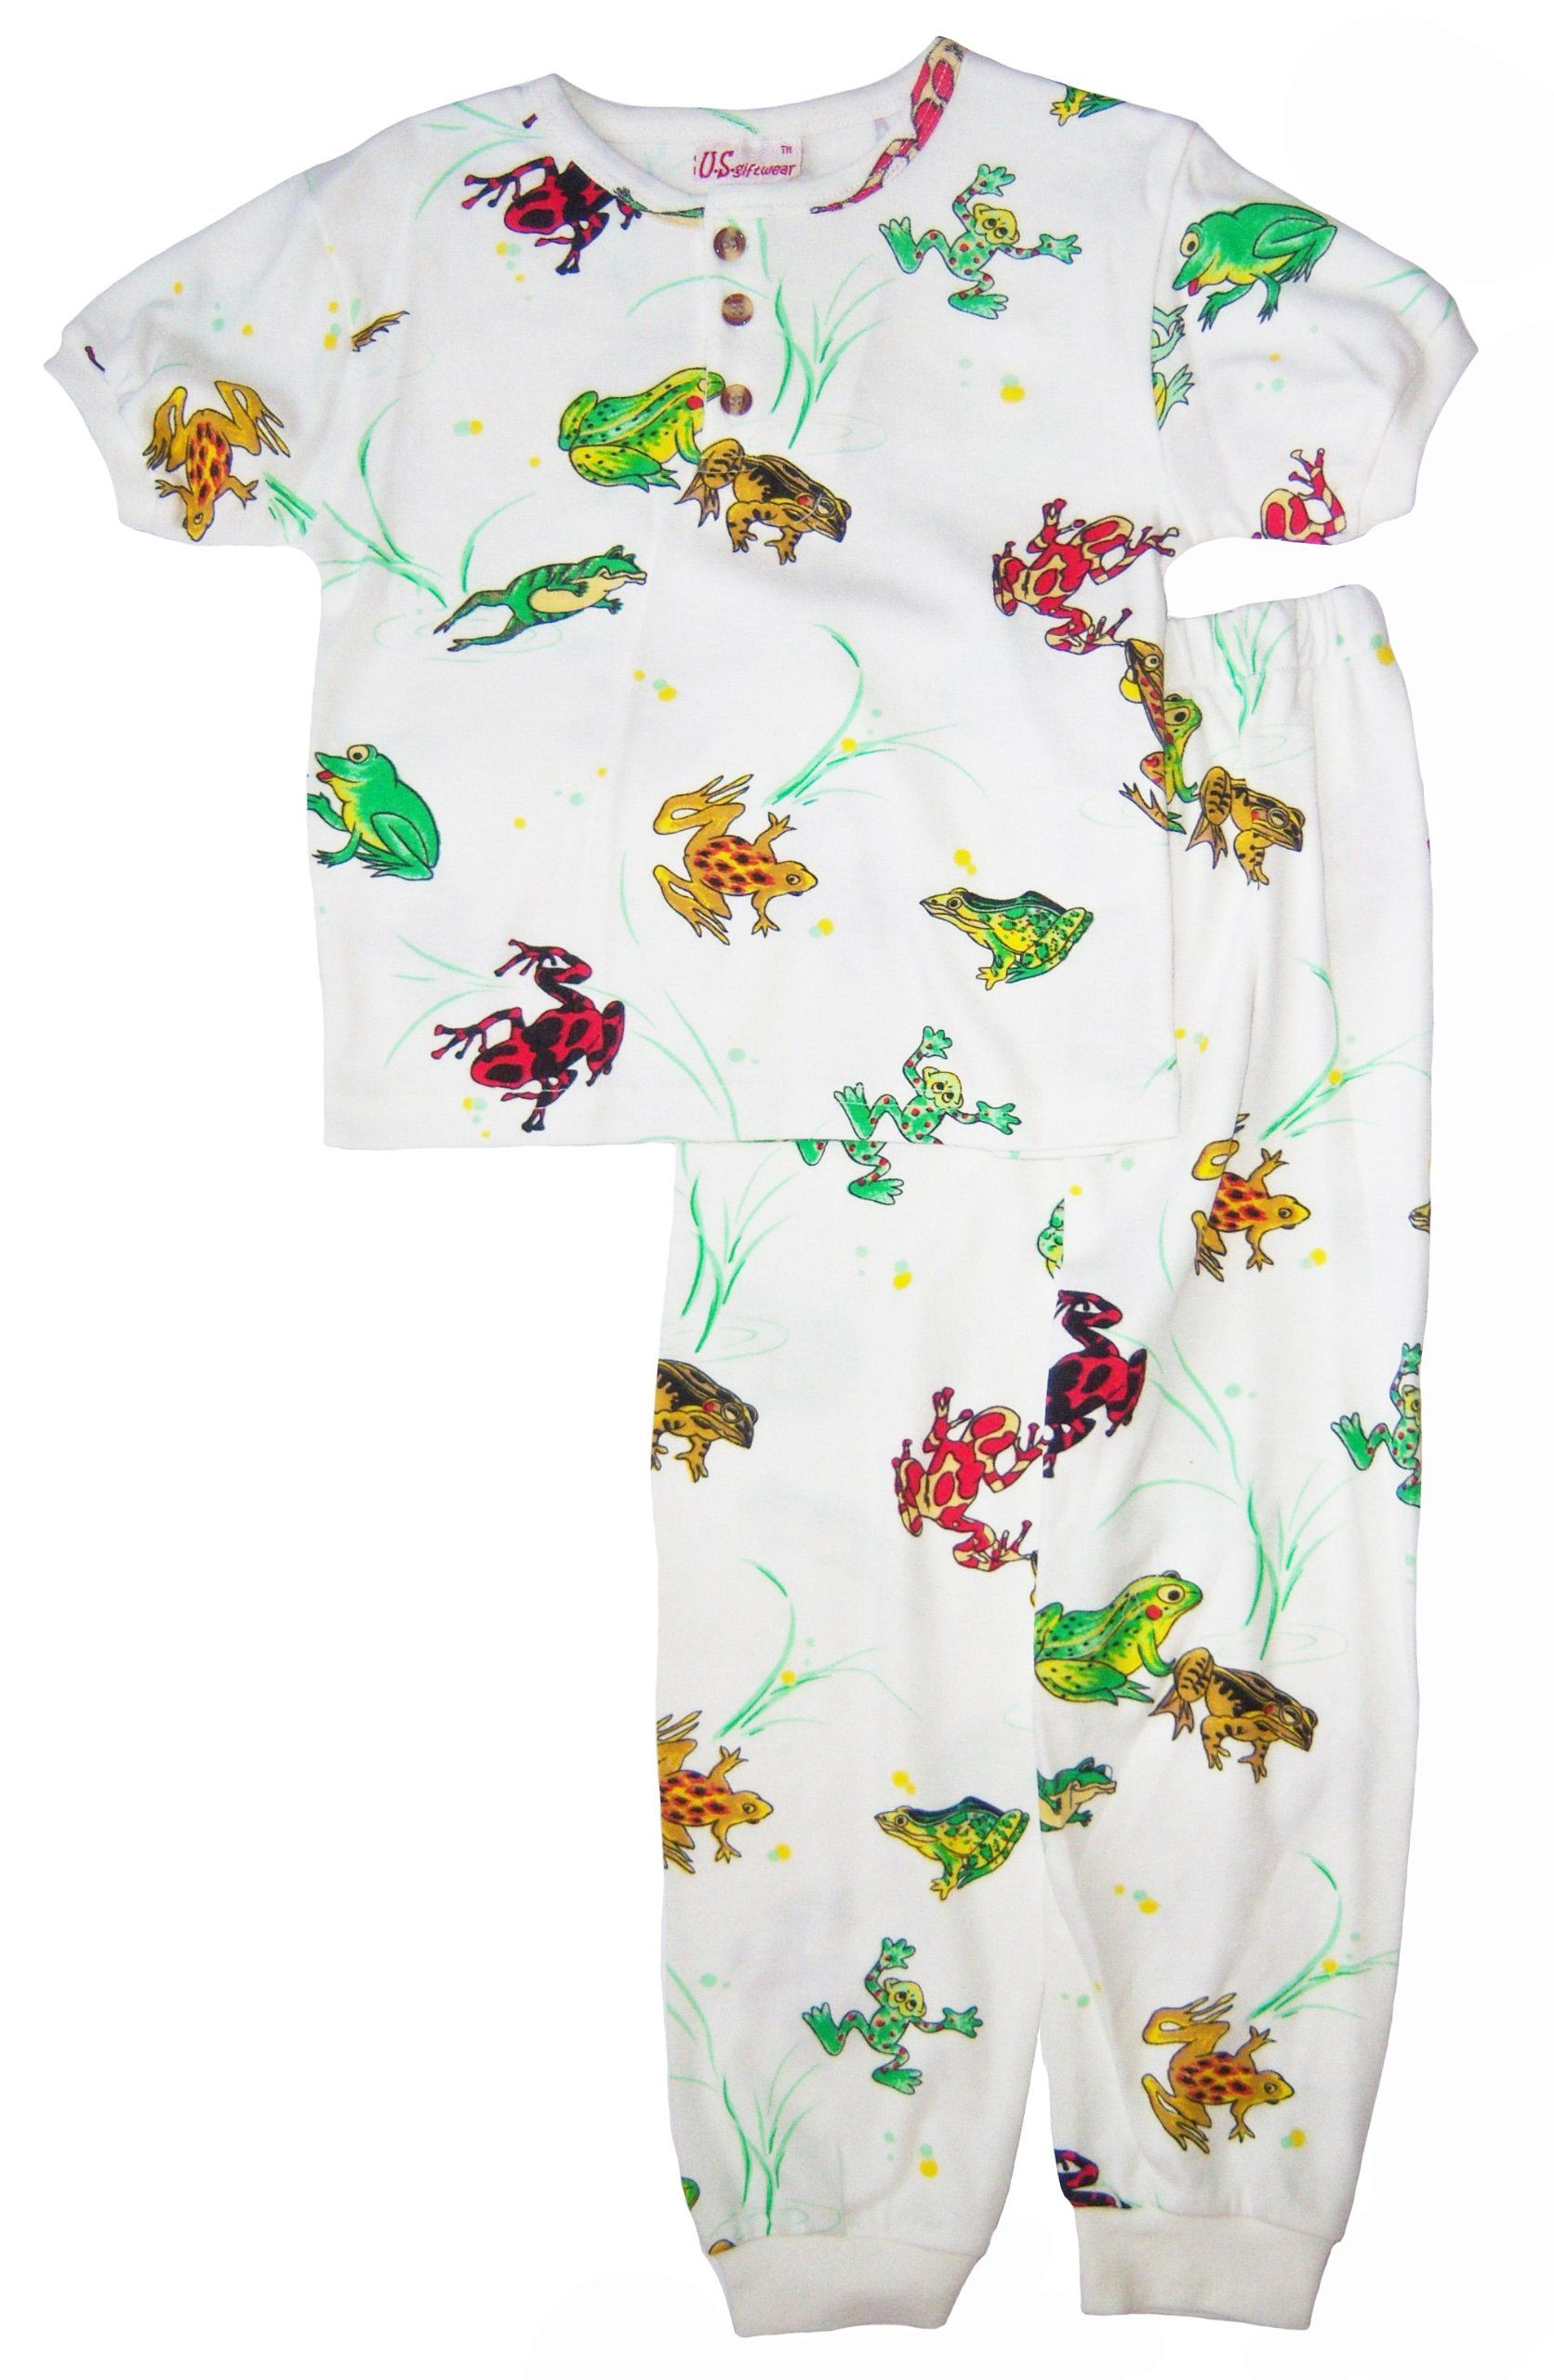 US Giftwear Unisex-child Frog Print 2-pc Pajama Set Size 3x4 Multicolor. 65% Cotton, 35% Polyester. All over prints with screen print details. Non-flame resistance. Generous size. Easy to care for machine wash and dry.